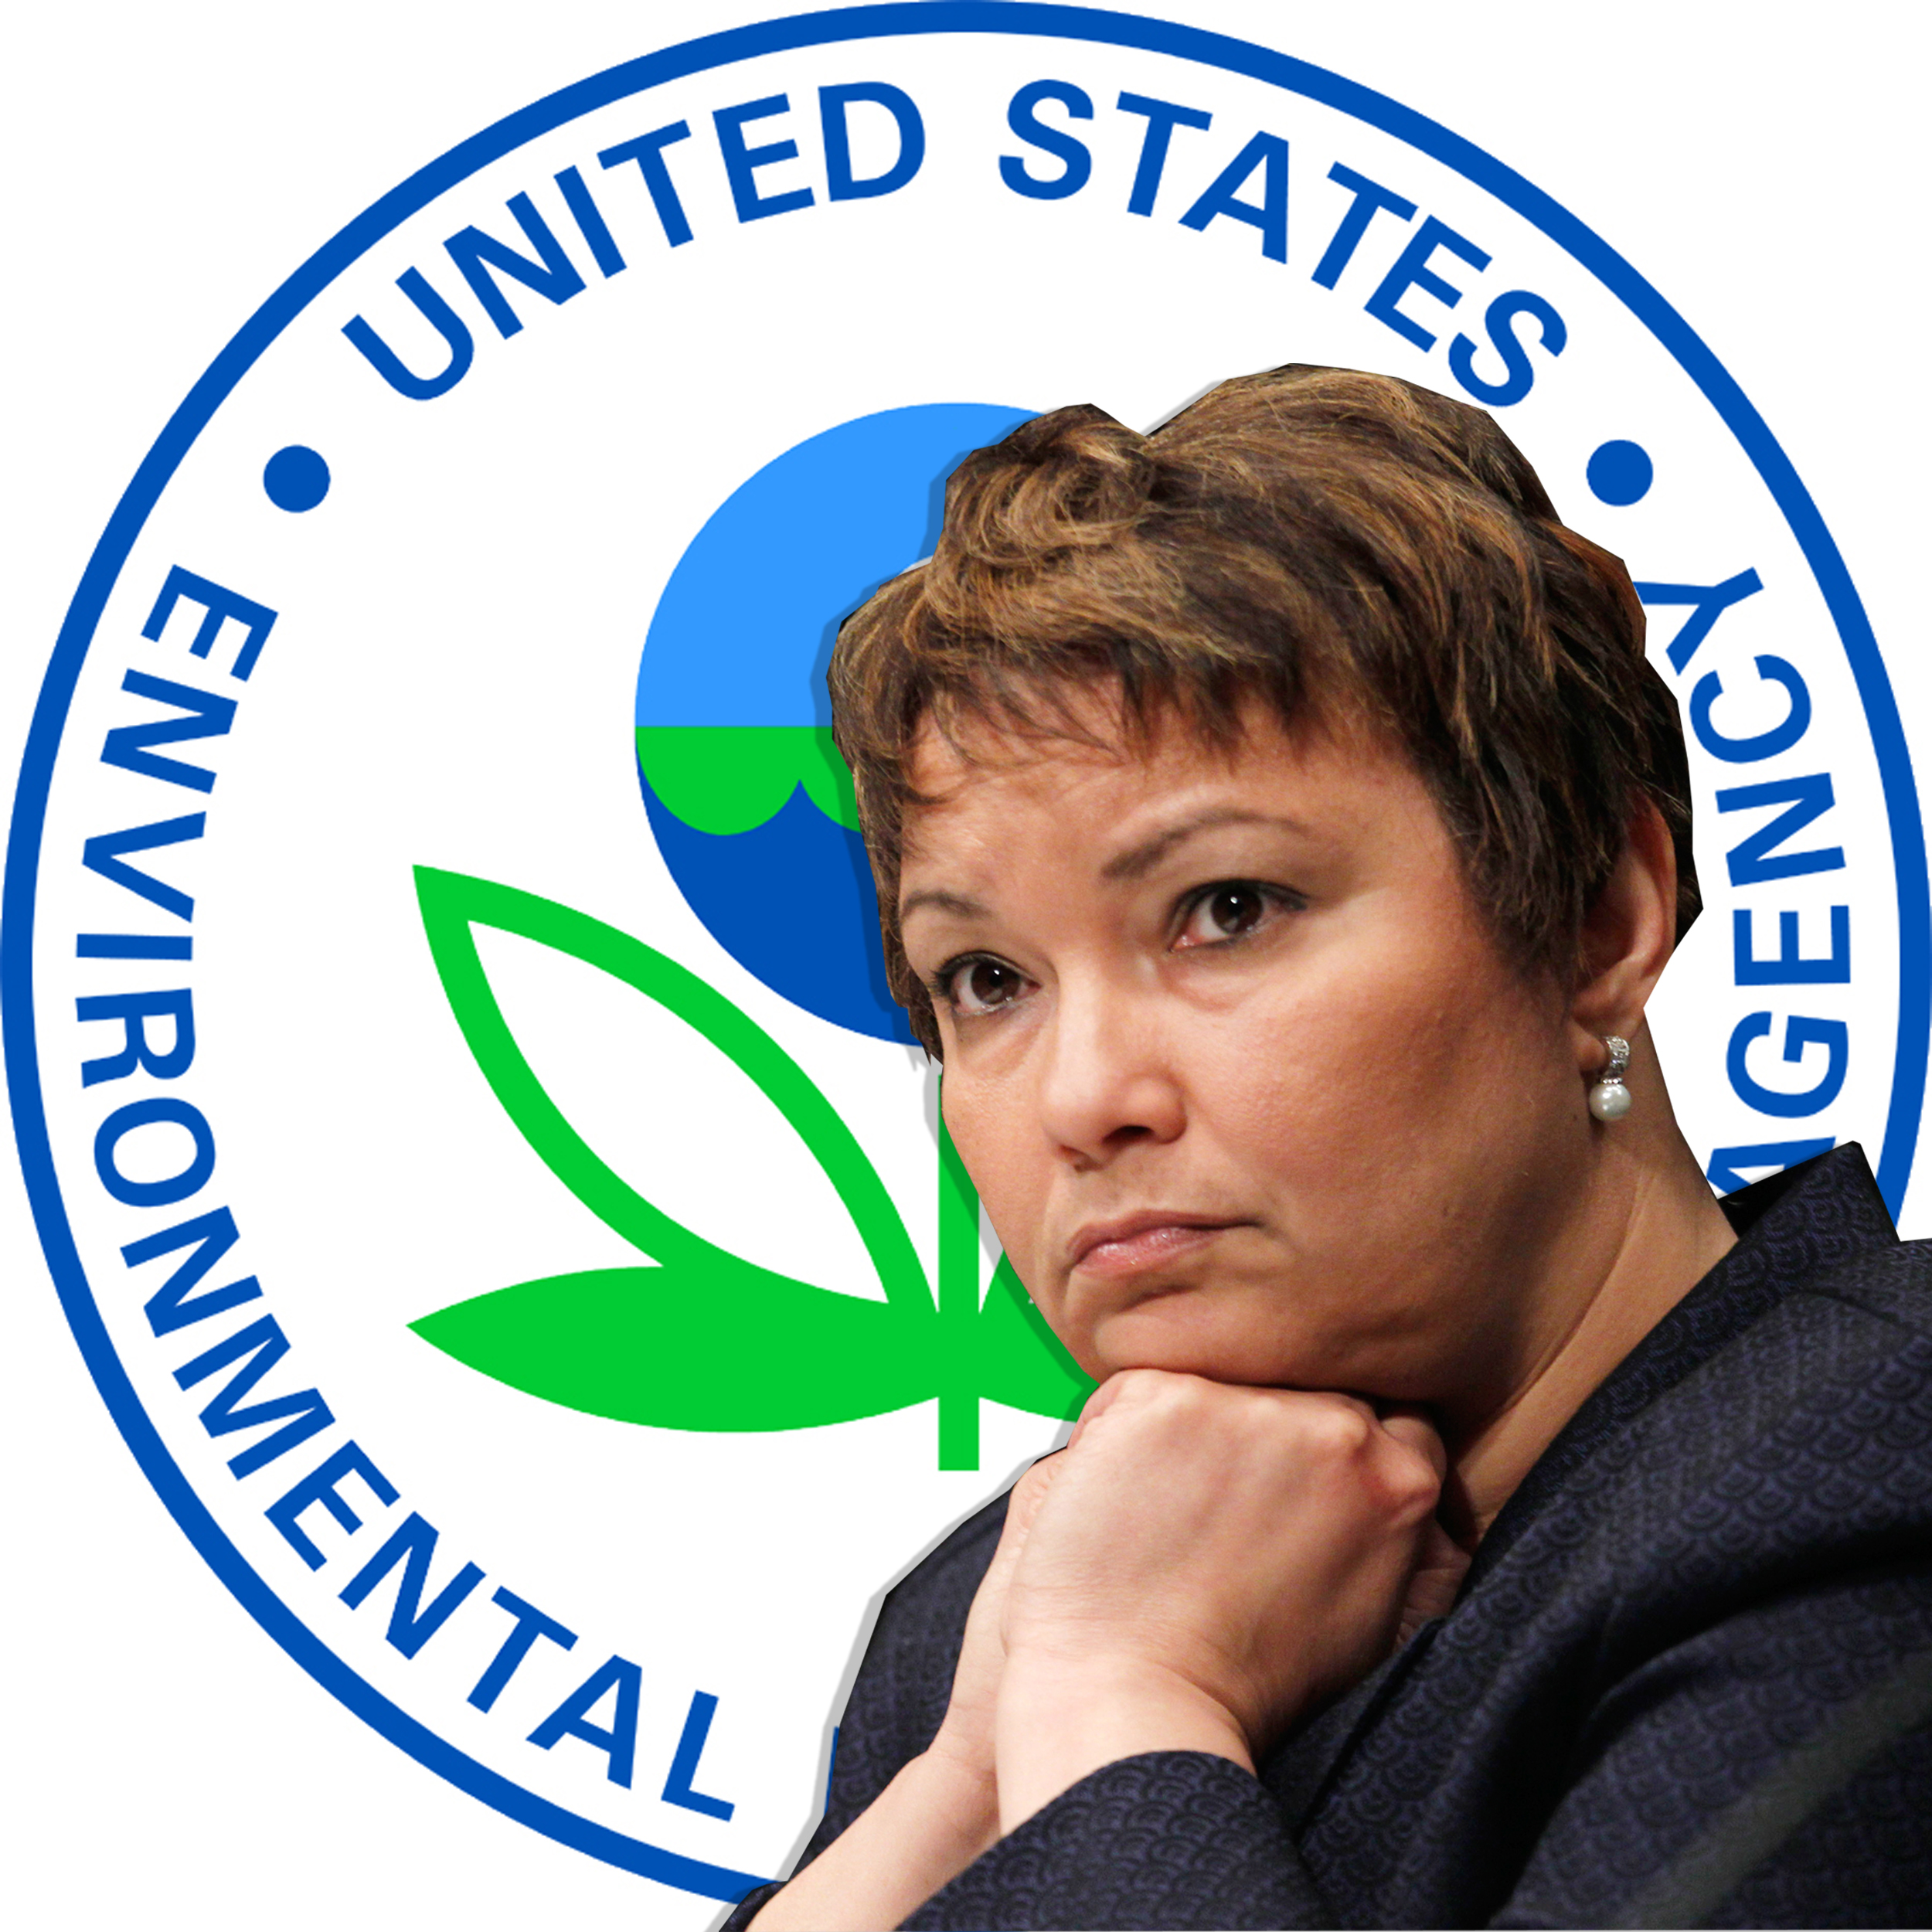 EPA gives campaign paper trail to Democrats; little trace of FOIA requests from Republicans